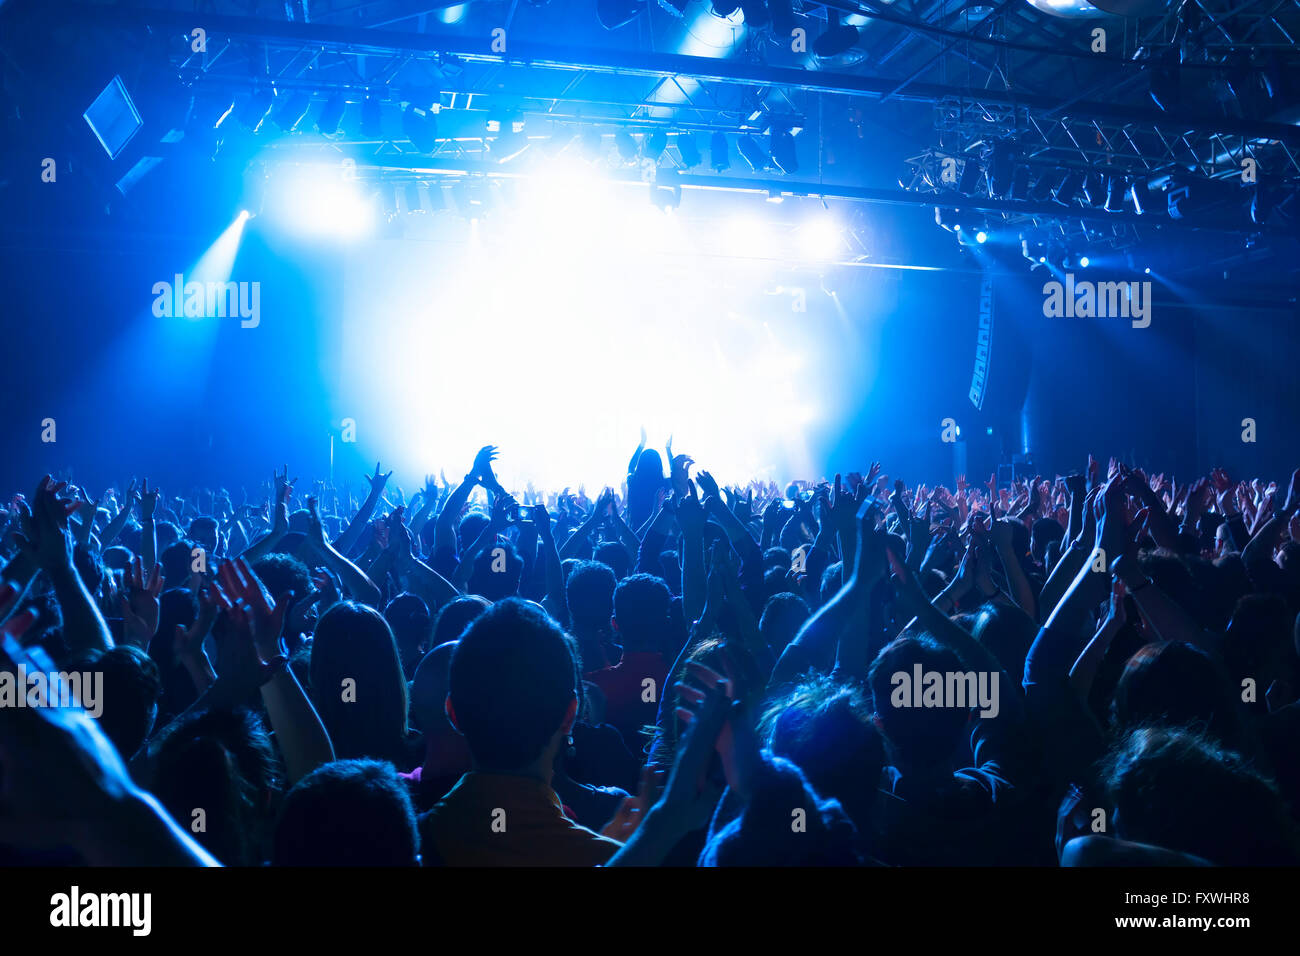 crowd silhouettes at music concert  in front of stage - Stock Image